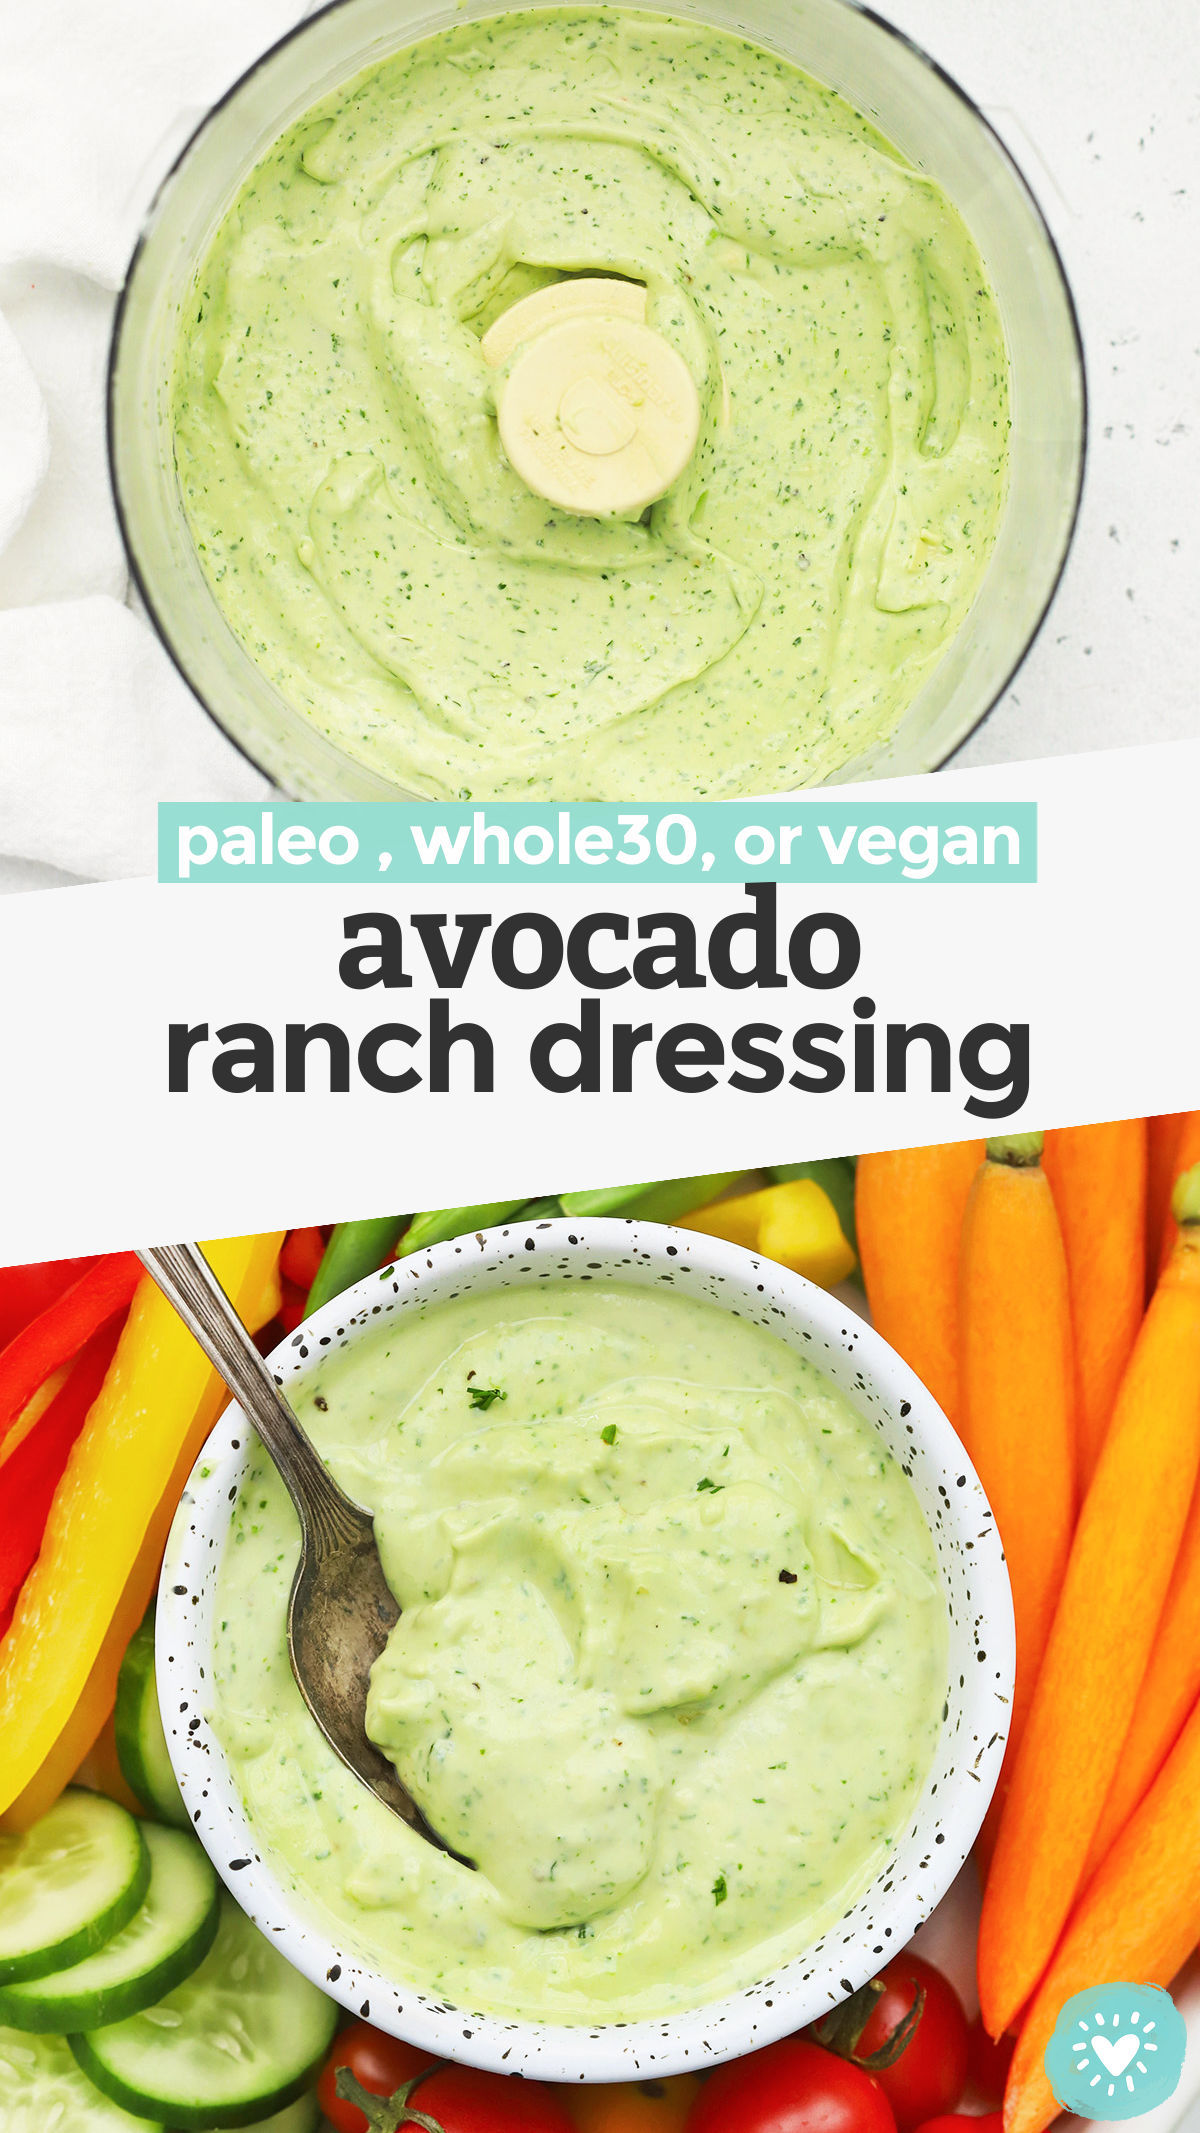 Creamy Avocado Ranch - This avocado ranch dressing recipe is everything I love about ranch dressing and avocados combined! It's an awesome dip for veggies, addition to tacos, or topping for salads. // Paleo Avocado Ranch // Vegan Avocado Ranch // Avocado Ranch Dip // Whole30 Avocado Ranch #paleoranch #avocadoranch #healthydip #avocado